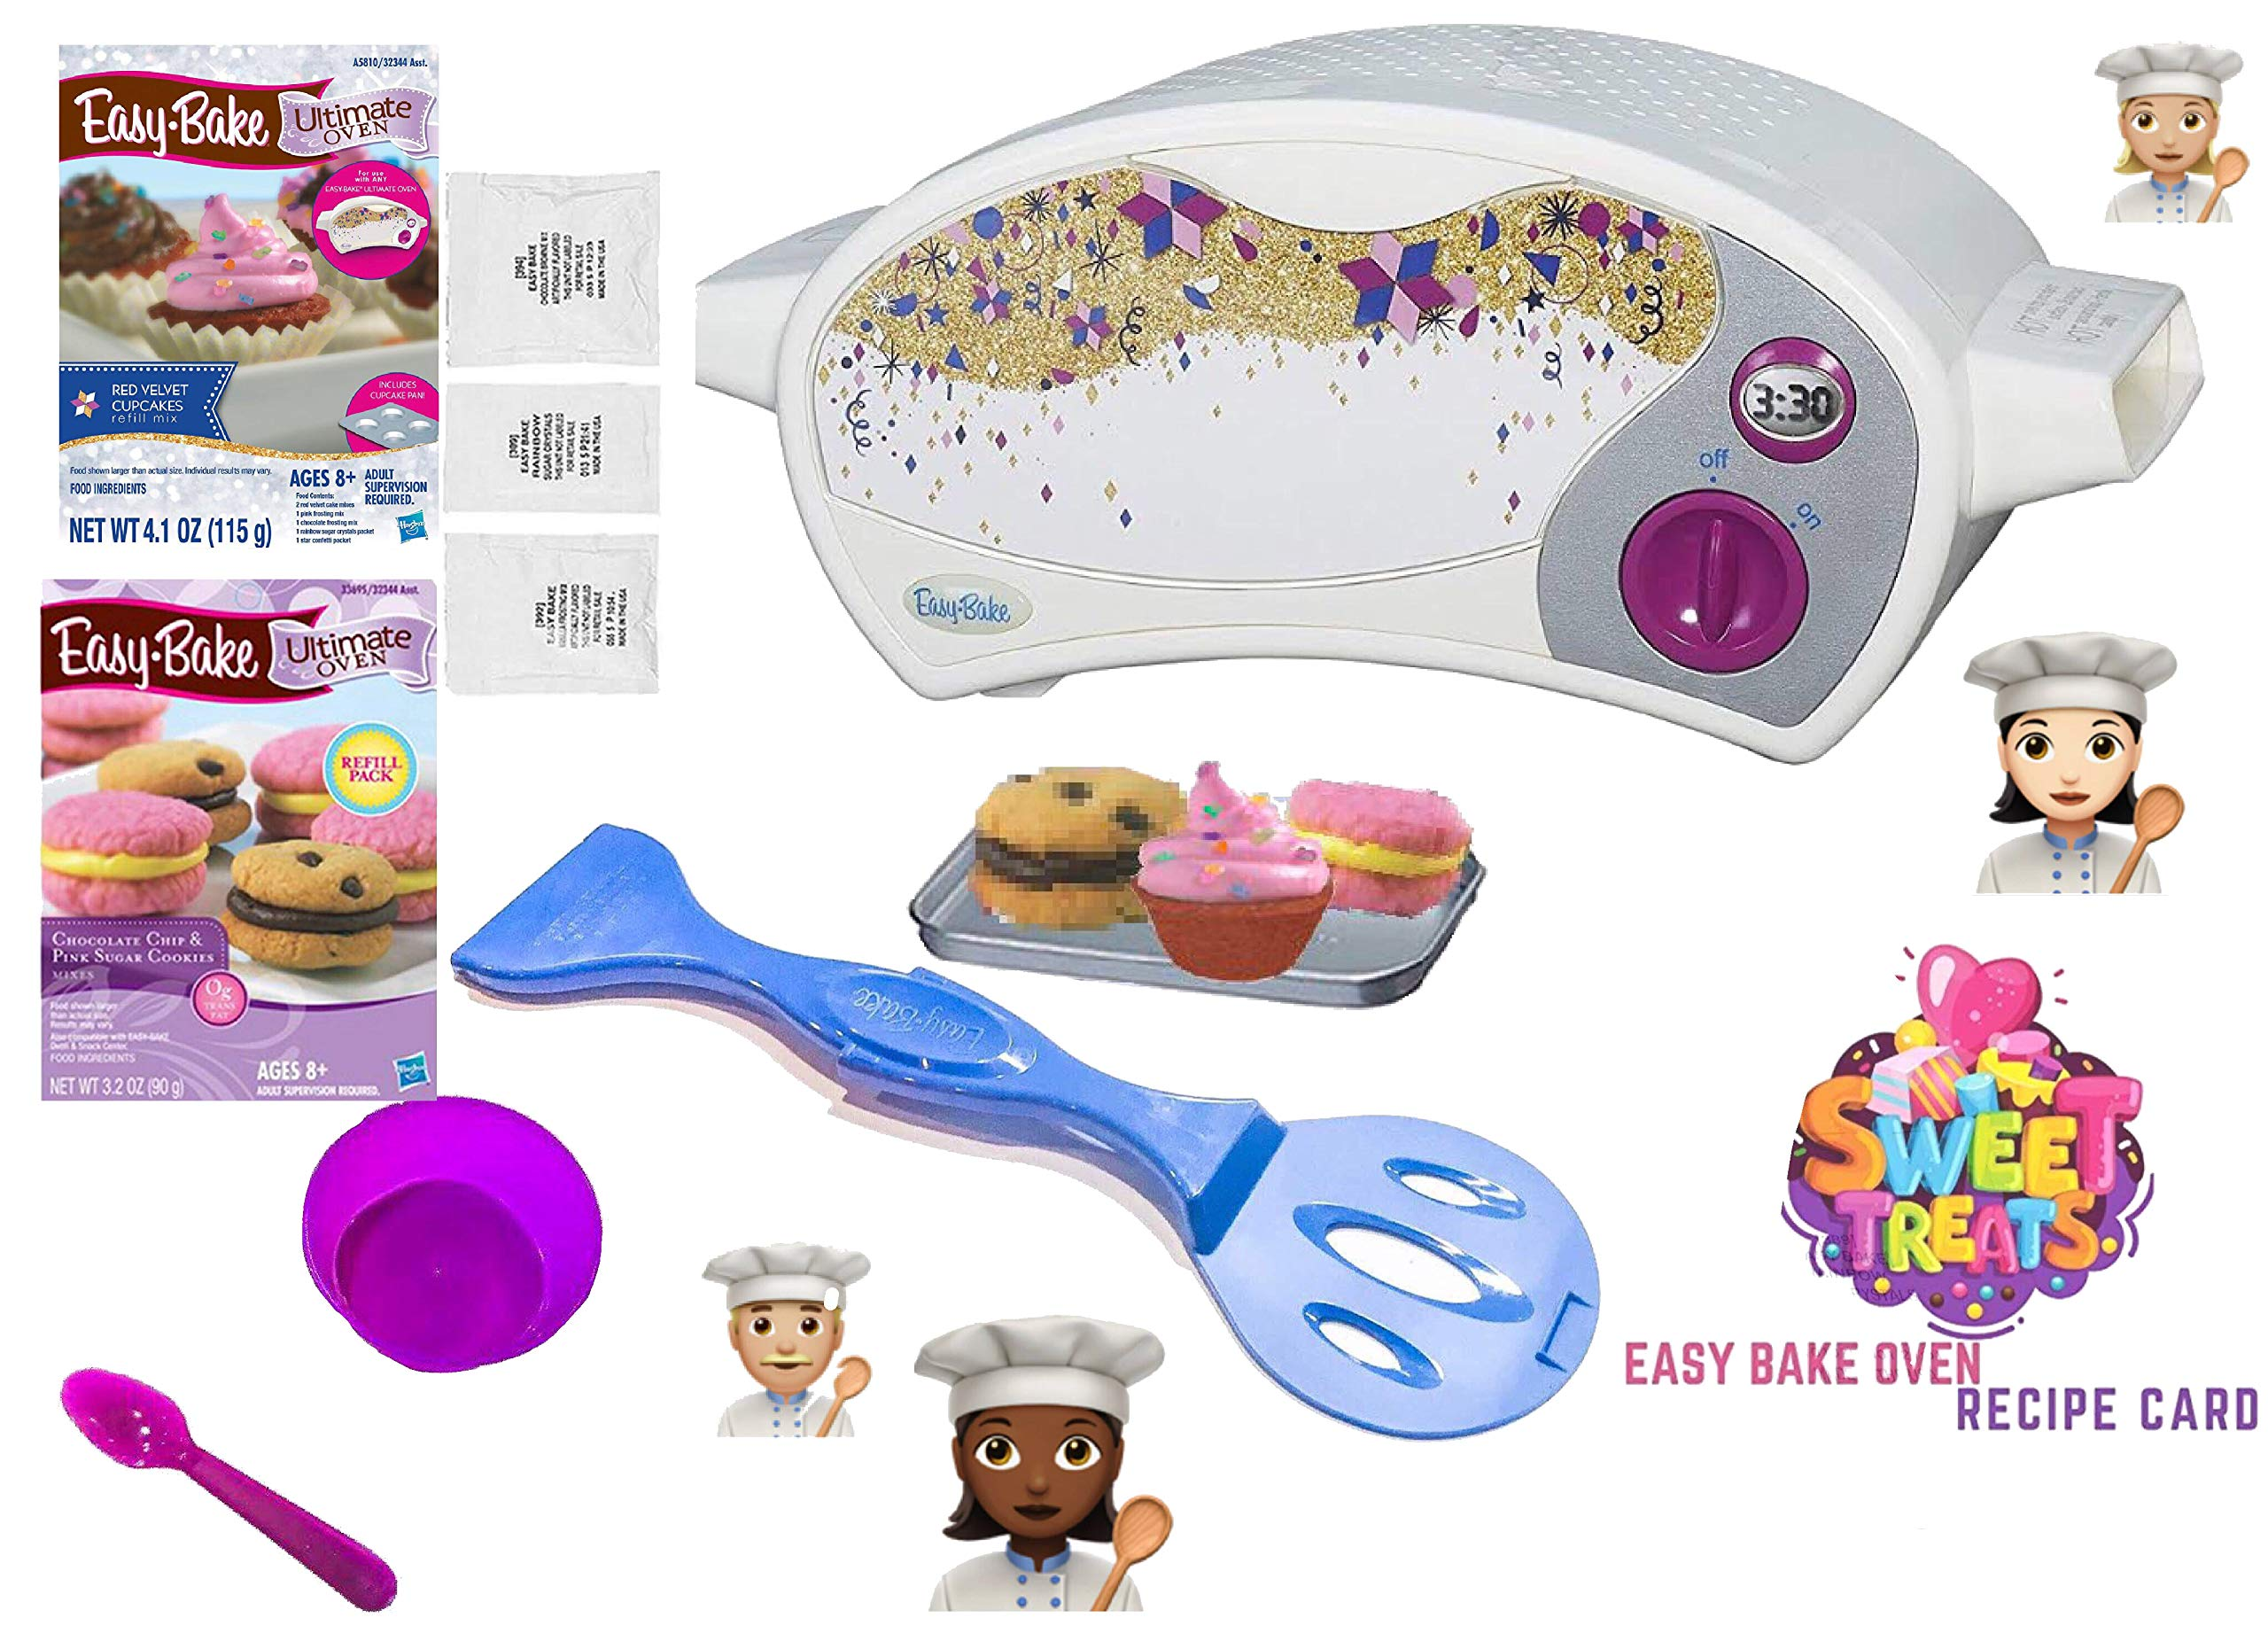 Easy Bake Ultimate Oven Baking Star Edition + 2 Oven Refill Mixes + 2 Sweet Treats Tasty Oven Recipes + Mixing Bowl AND Spoon (5 Total Items)